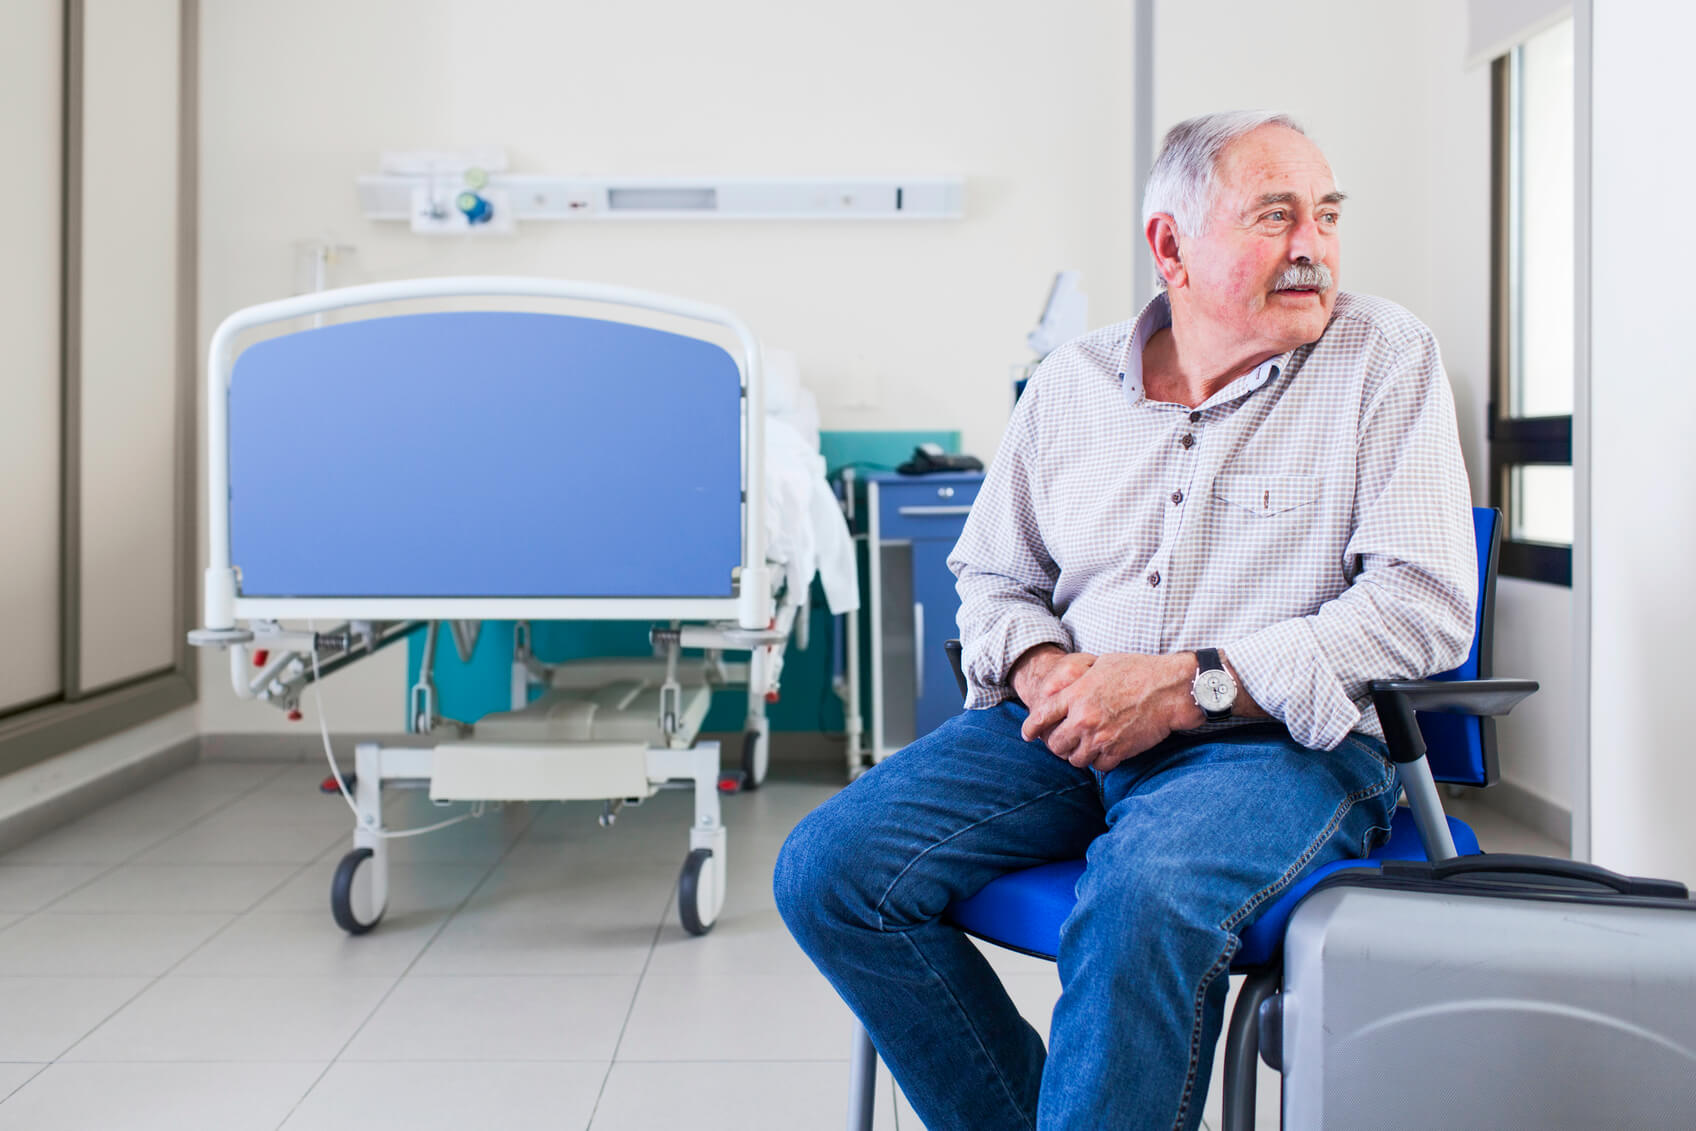 Patient about to leave hospital.